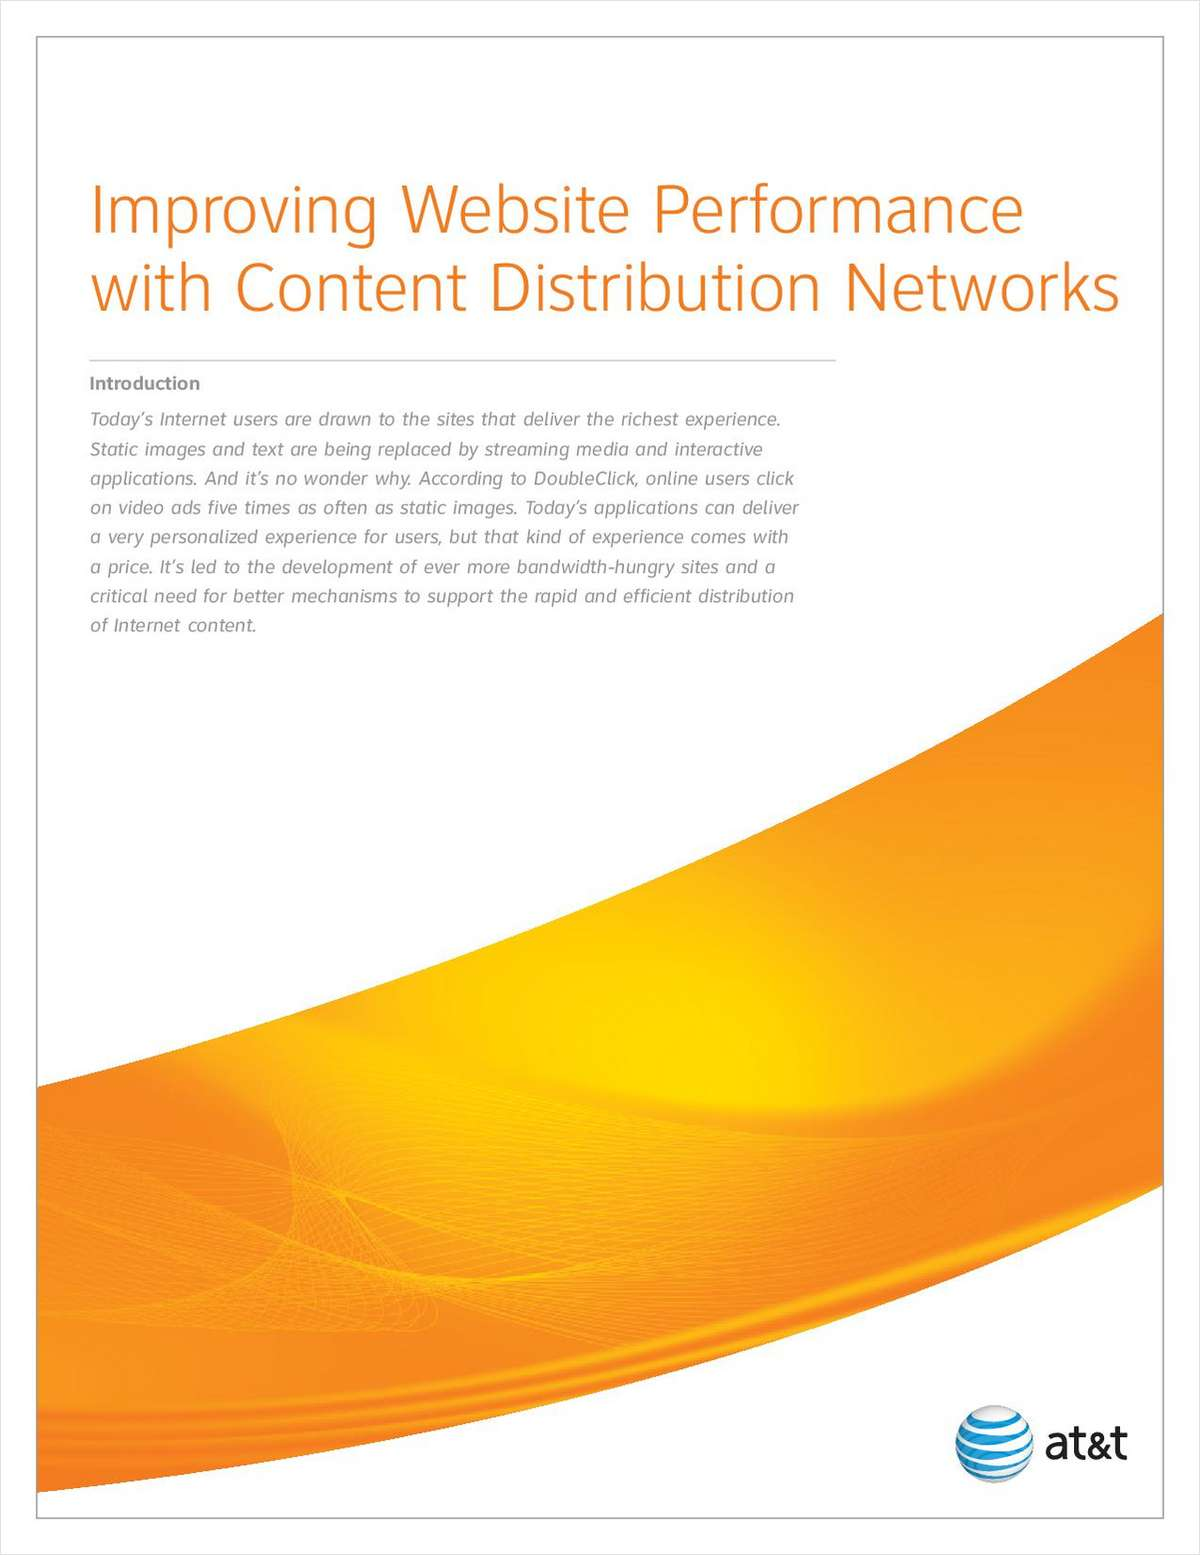 Improving Website Performance with Content Distribution Networks